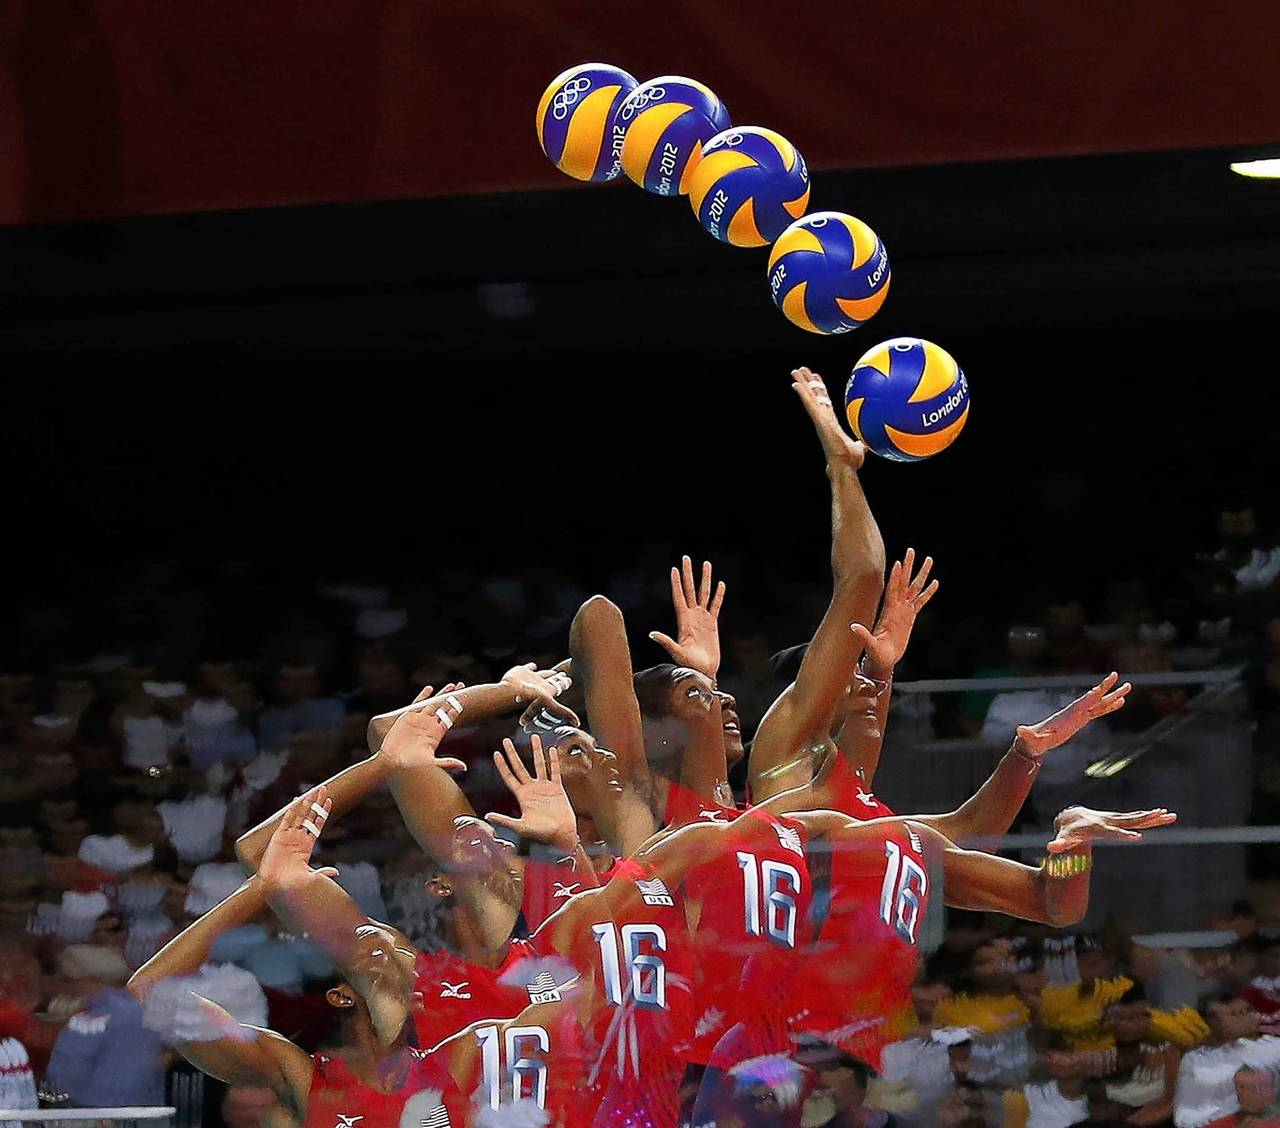 Foluke Akinradewo of the U.S. serves against Turkey during their women's group B volleyball match at Earls Court.